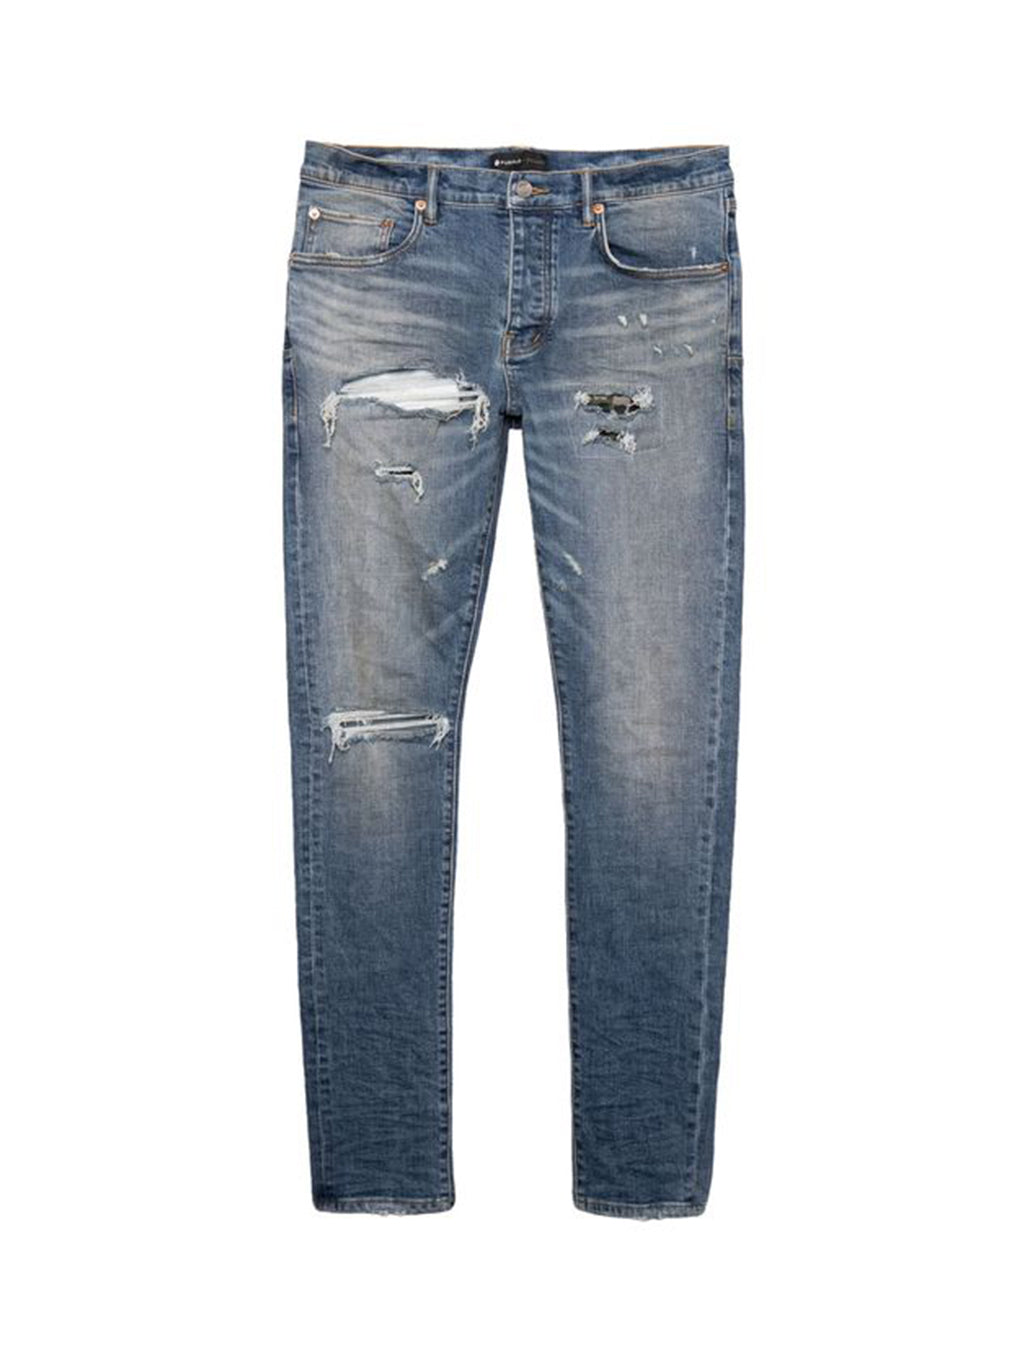 Blue Indigo Reflective Repair Jeans